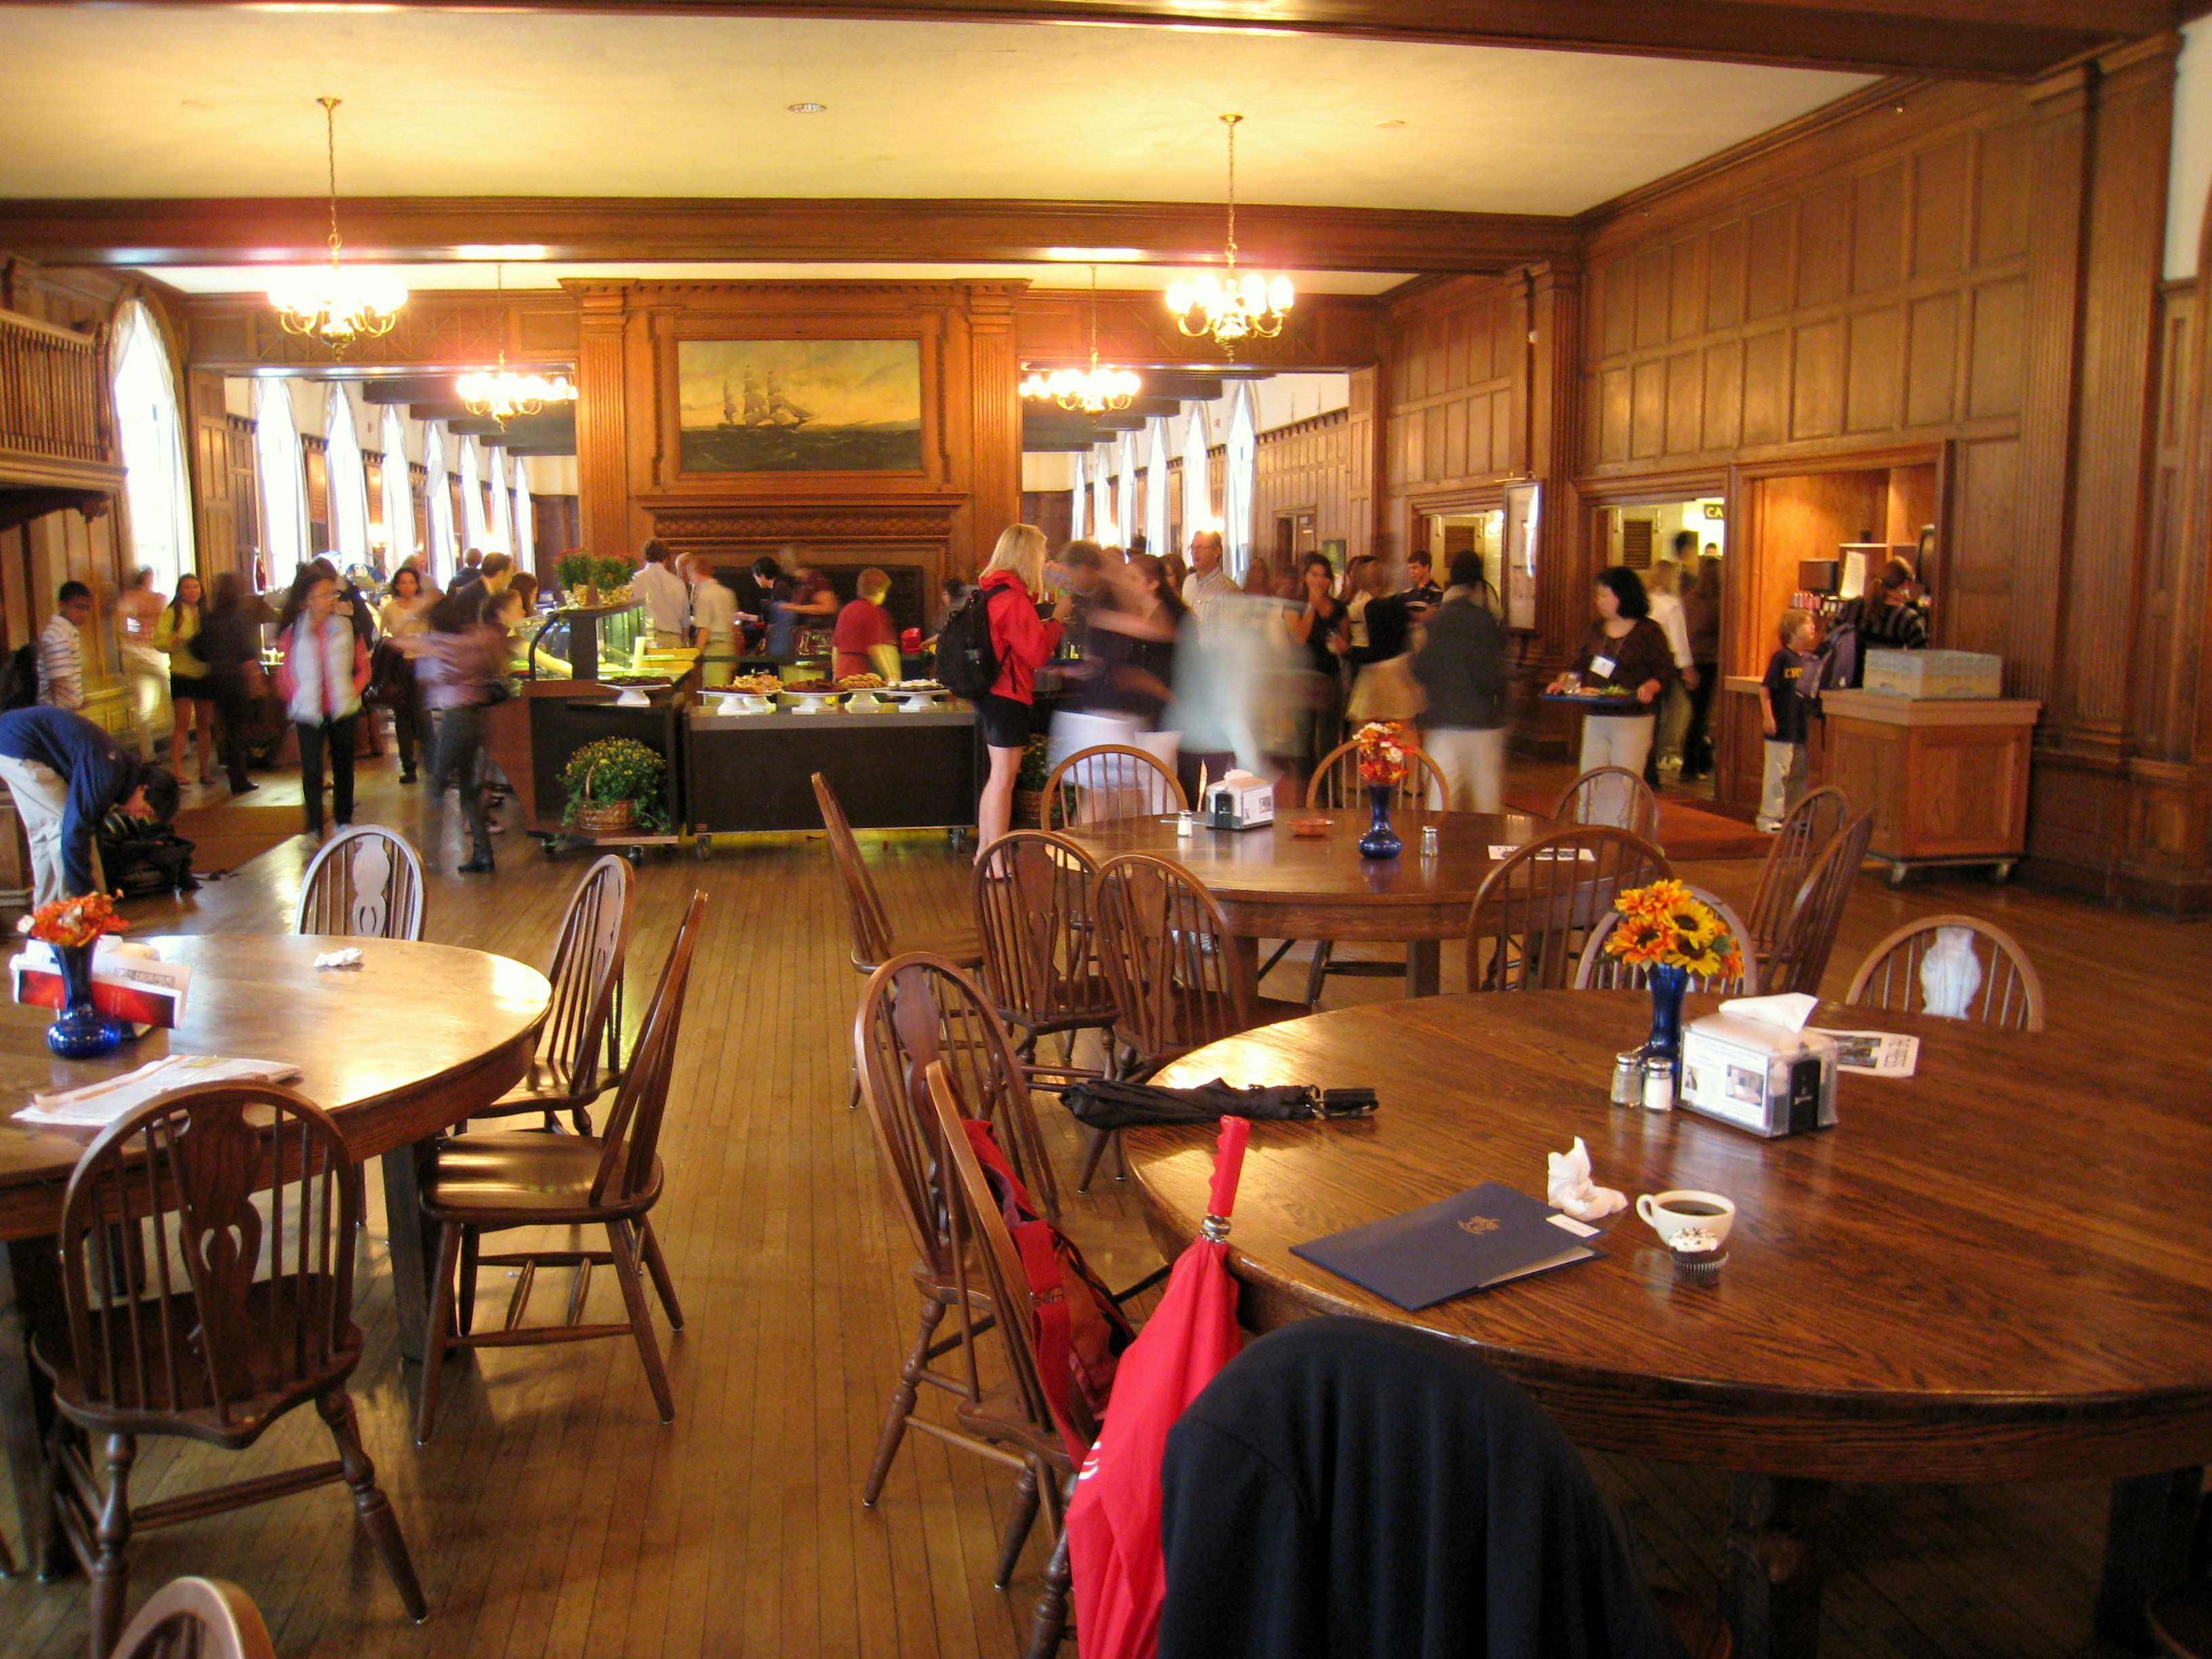 The superlative subjunctive the evolution of choate for House dining hall images